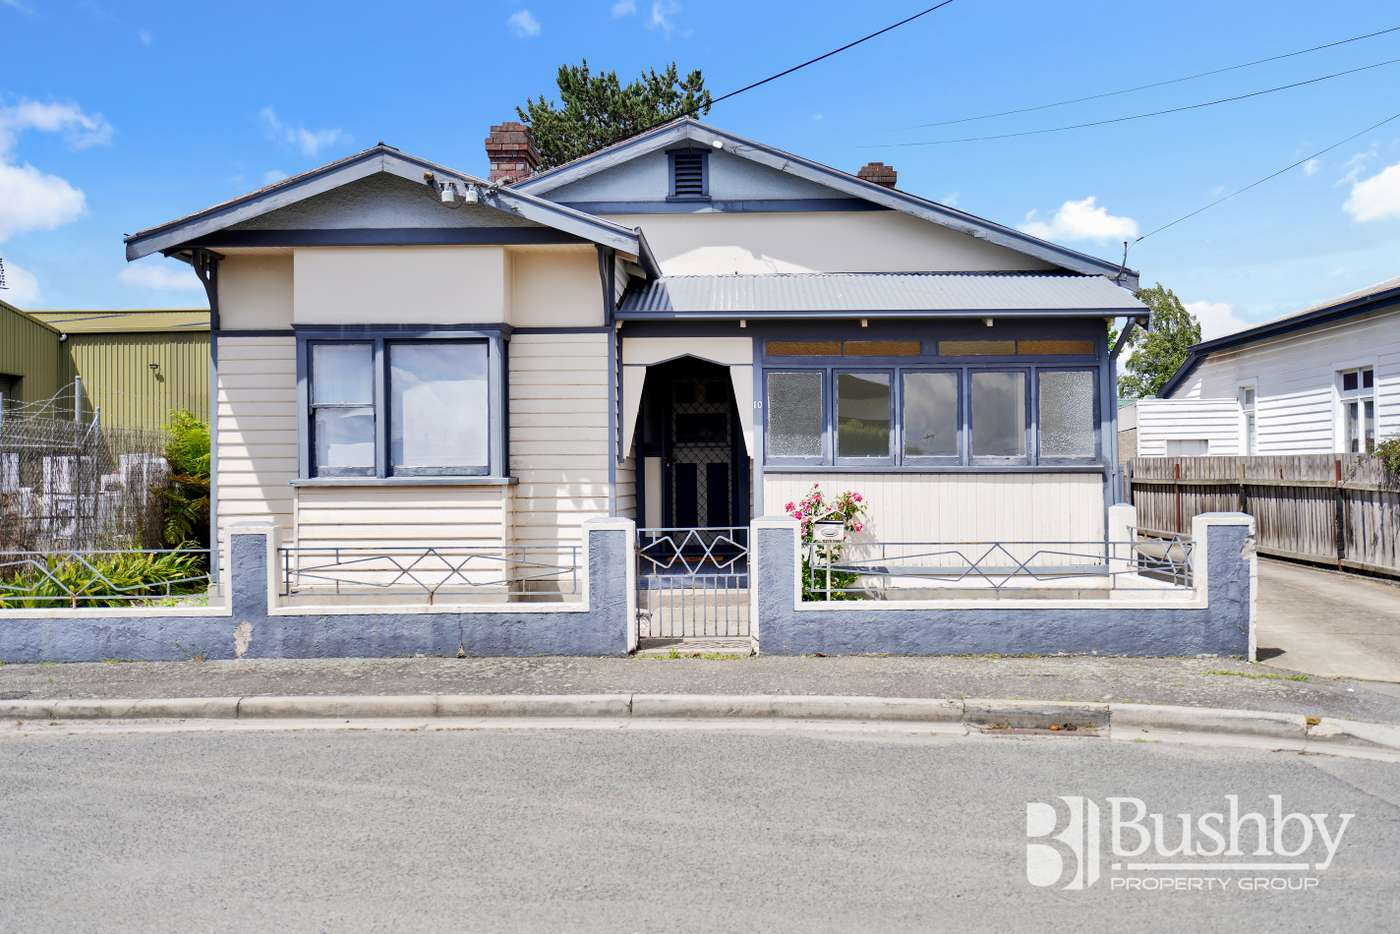 Main view of Homely house listing, 10 Donald Street, Invermay TAS 7248